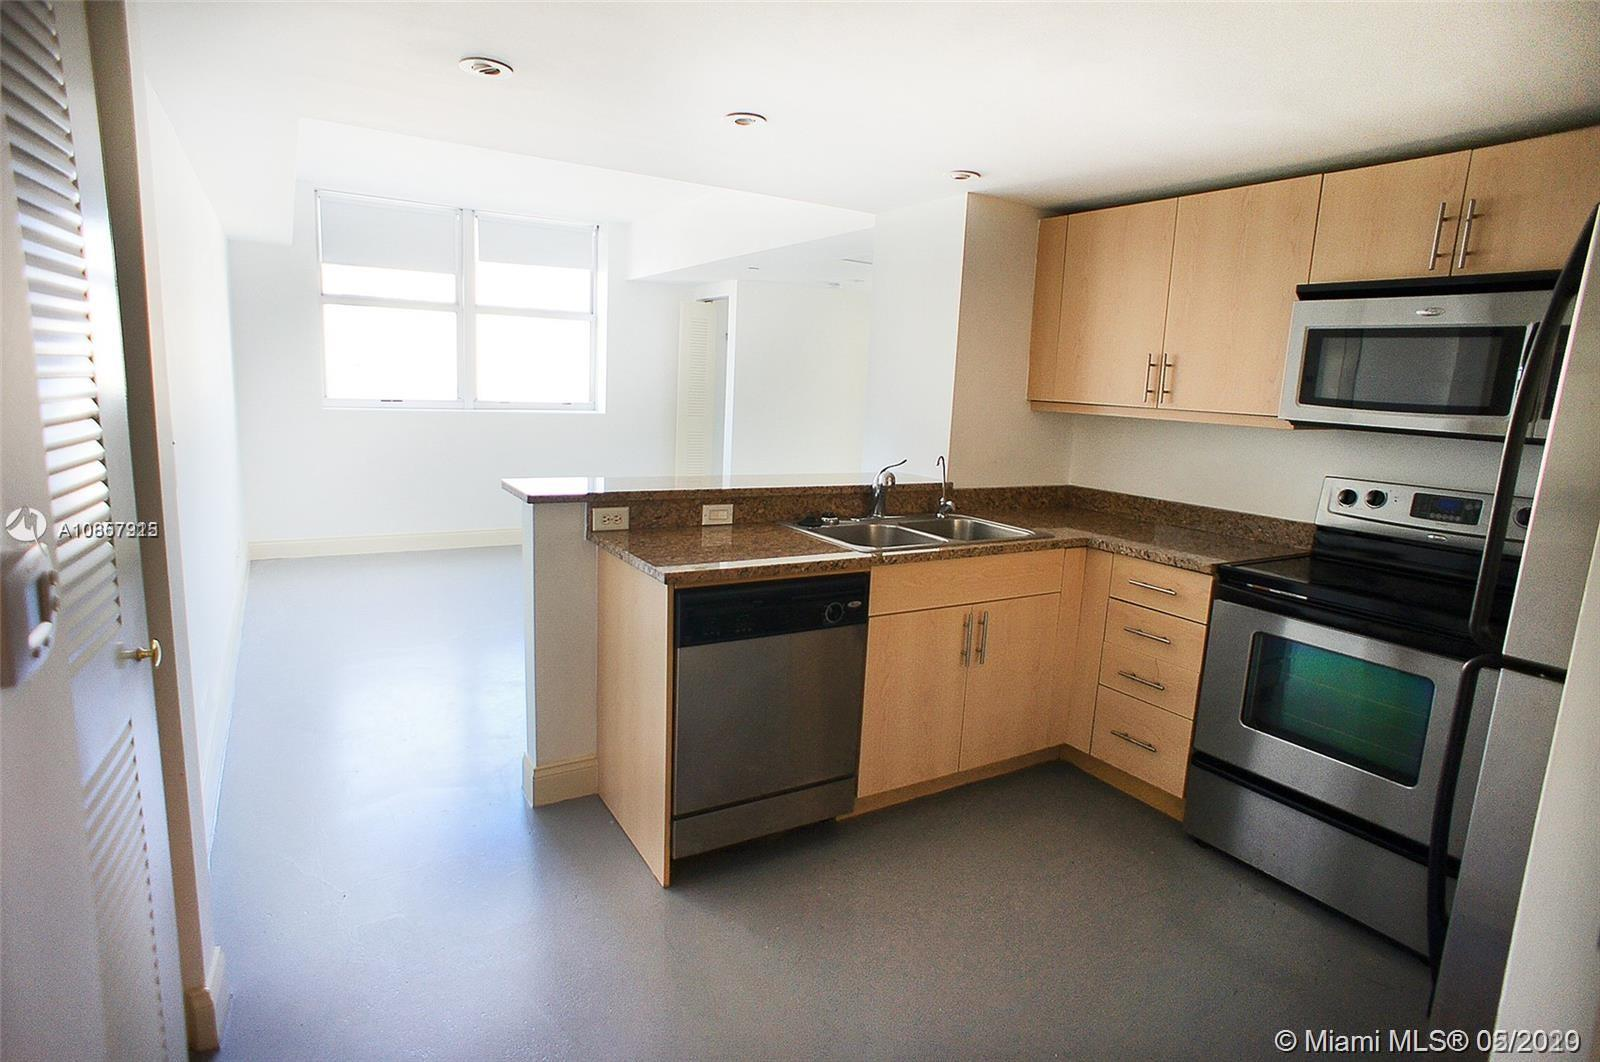 Beautiful, bright and spacious 2 Bed 1 Bath unit in Flagler First Condominium. Located in the heart of Urban Downtown Miami. Features stainless-steel appliances, granite countertops, impact windows, washer, and dryer in the unit. Walking distance to shops, Whole Foods Market, Bayside park, restaurants, and entertainment. The gym is available to residents. Great location walks to metro mover stations and close to the new train station. Easy access to lots of government buildings, office buildings, and retail. Easy to show